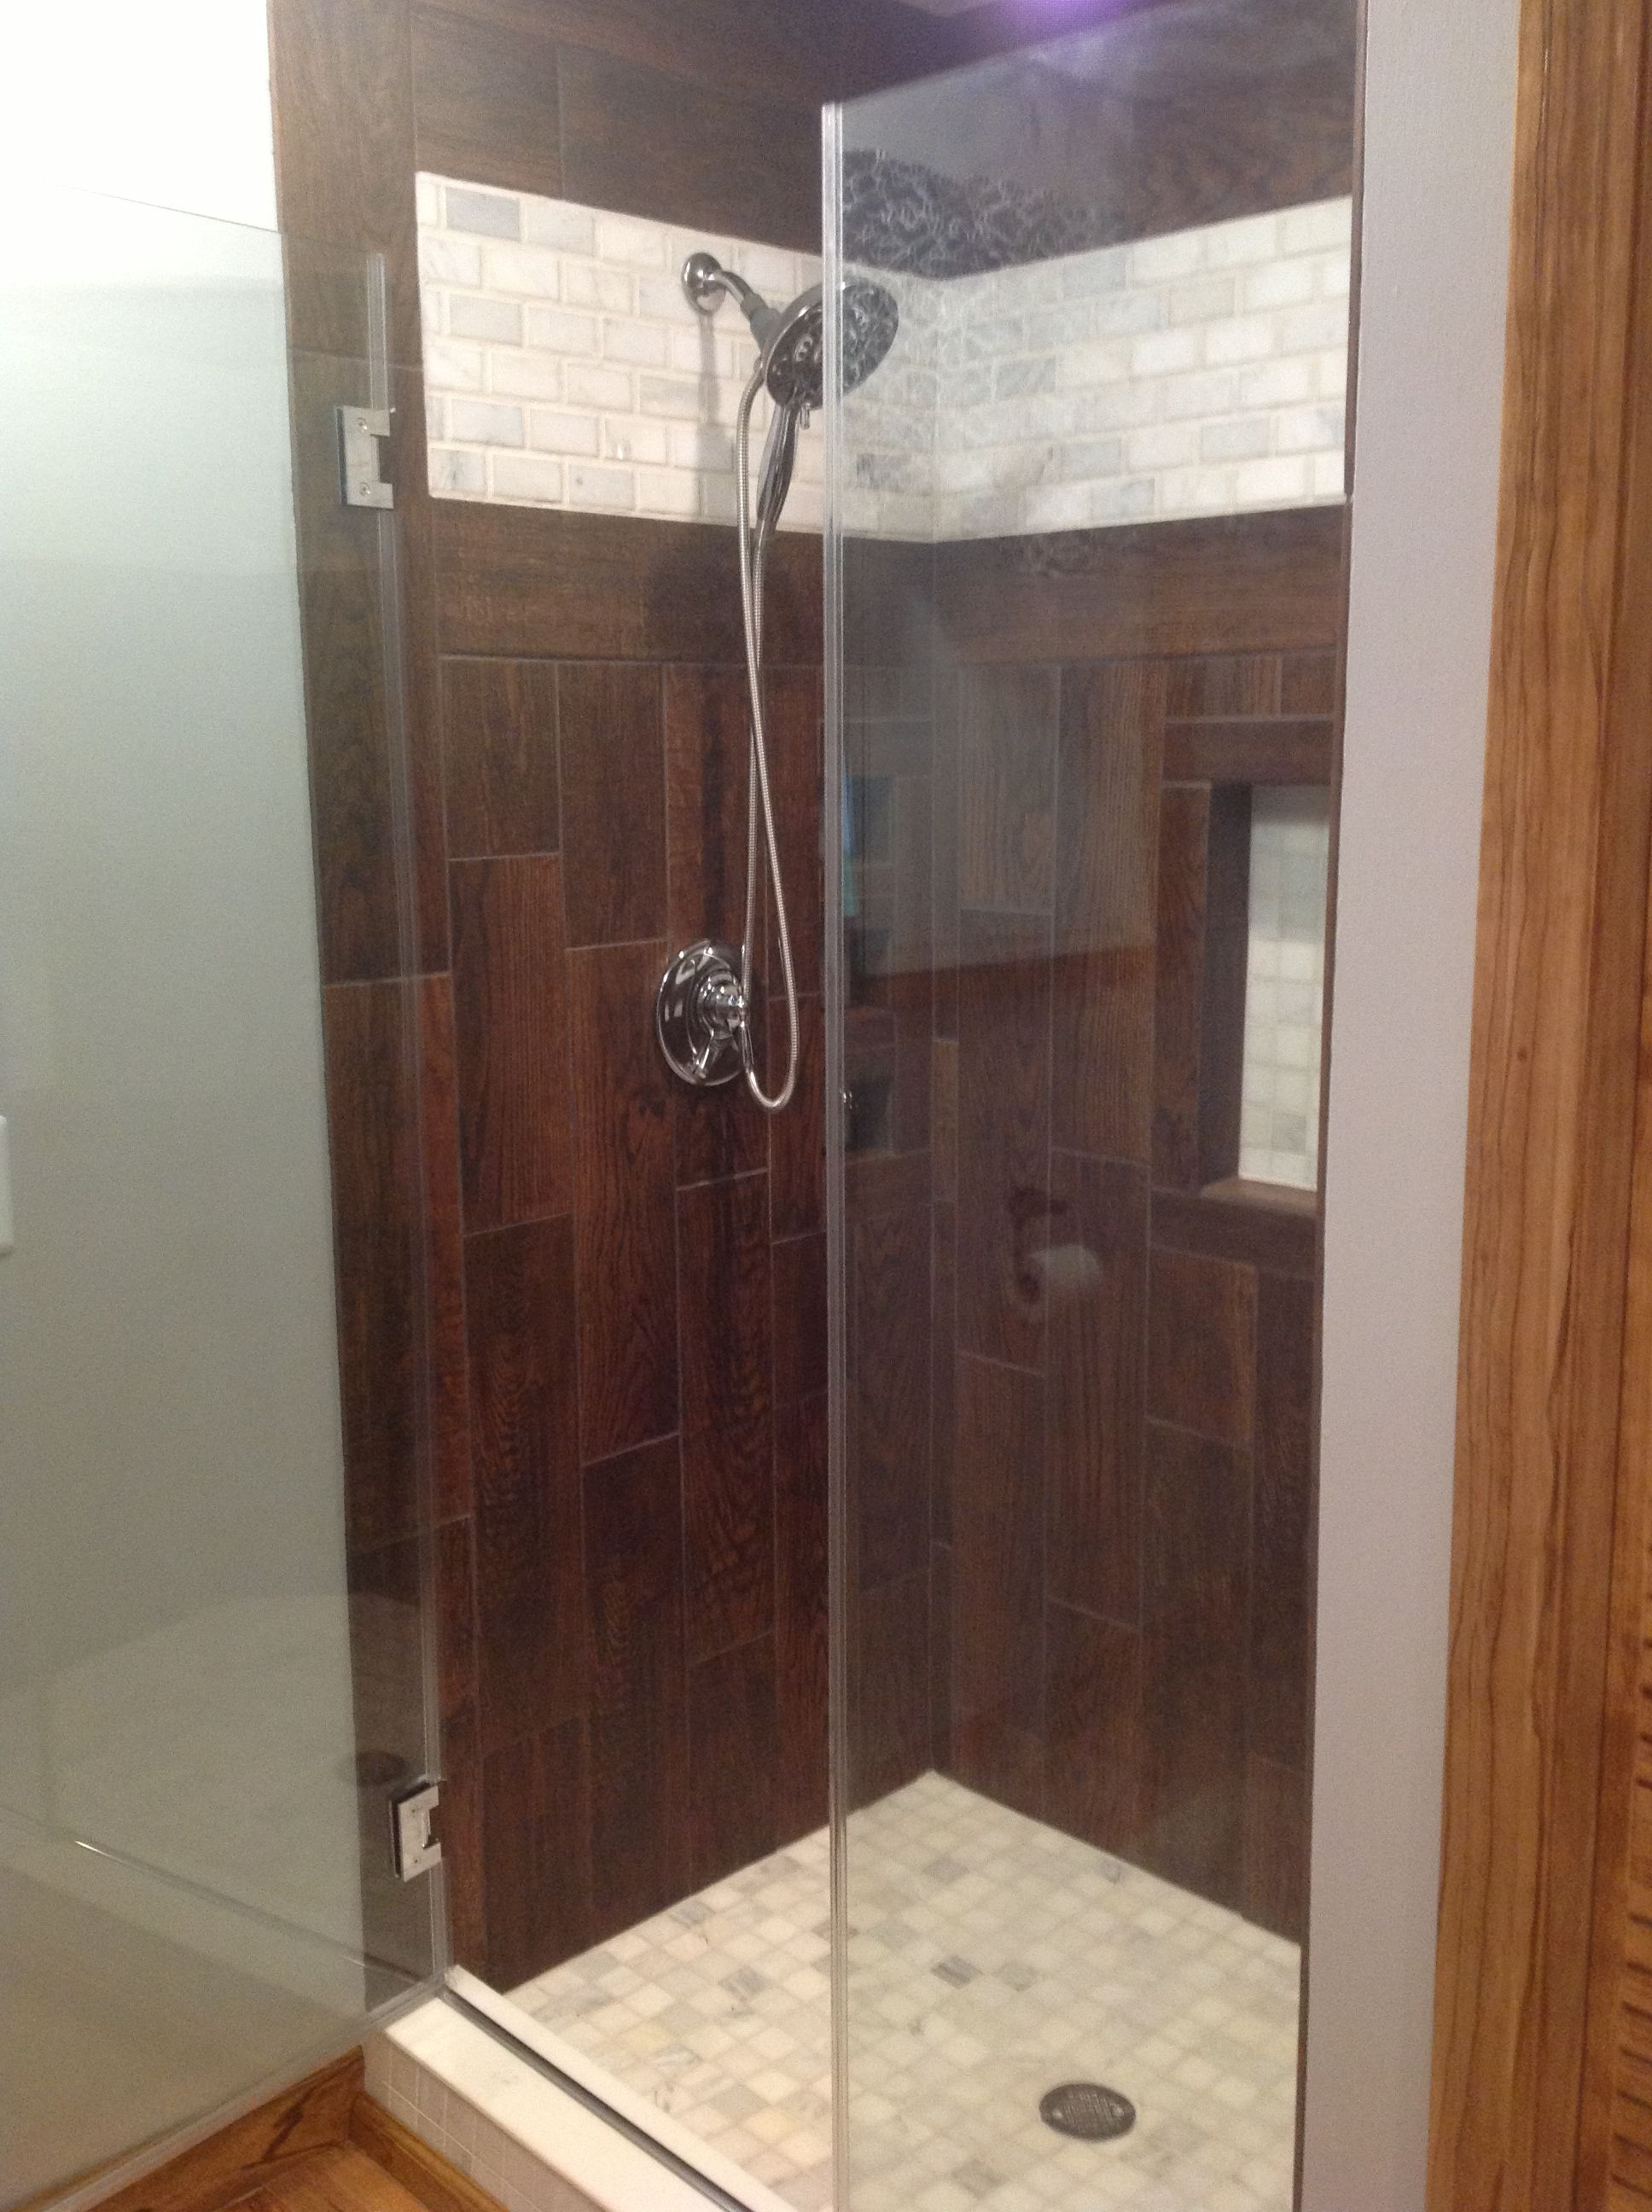 Ceramic Tile That Looks Like Wood Shower Stall Downstairs